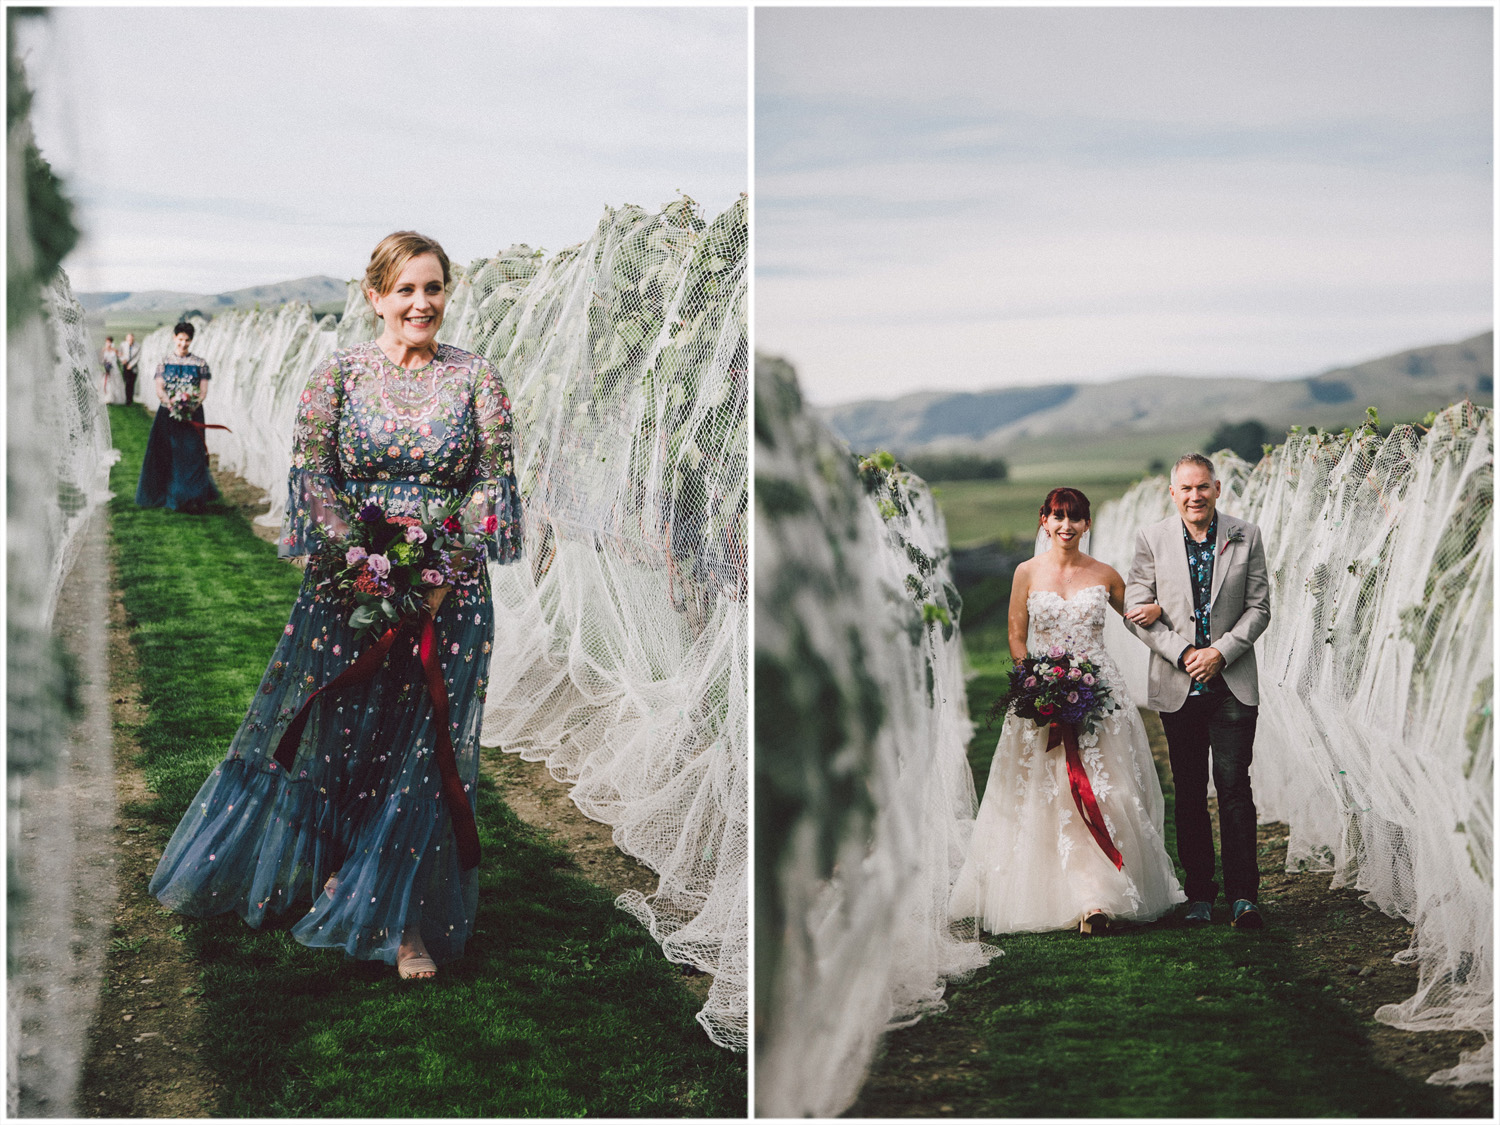 Sarah_McEvoy_Poppies_Wedding_Wairarapa_029.jpg